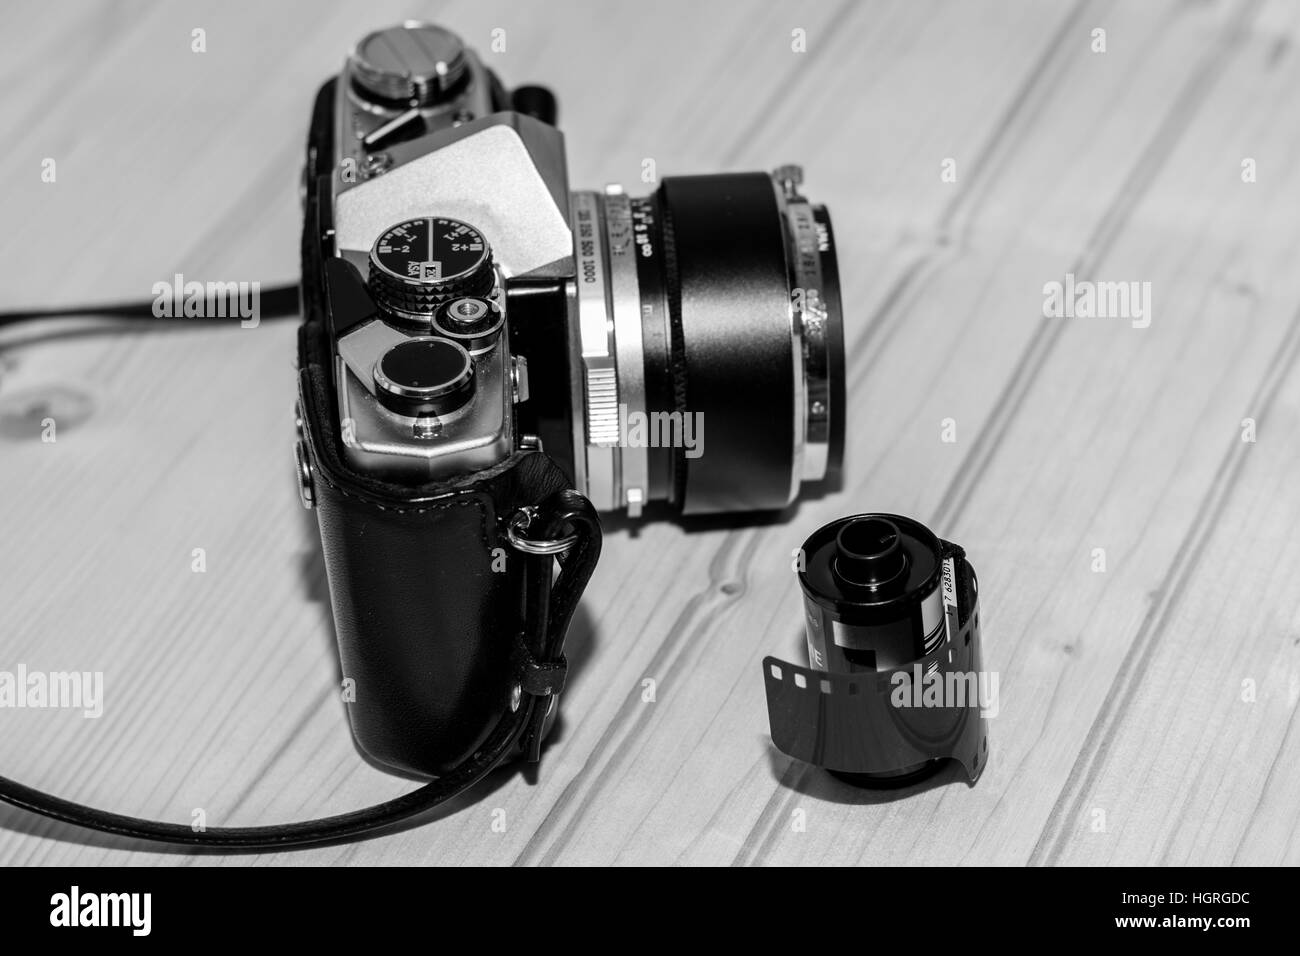 Vintage photography - Stock Image